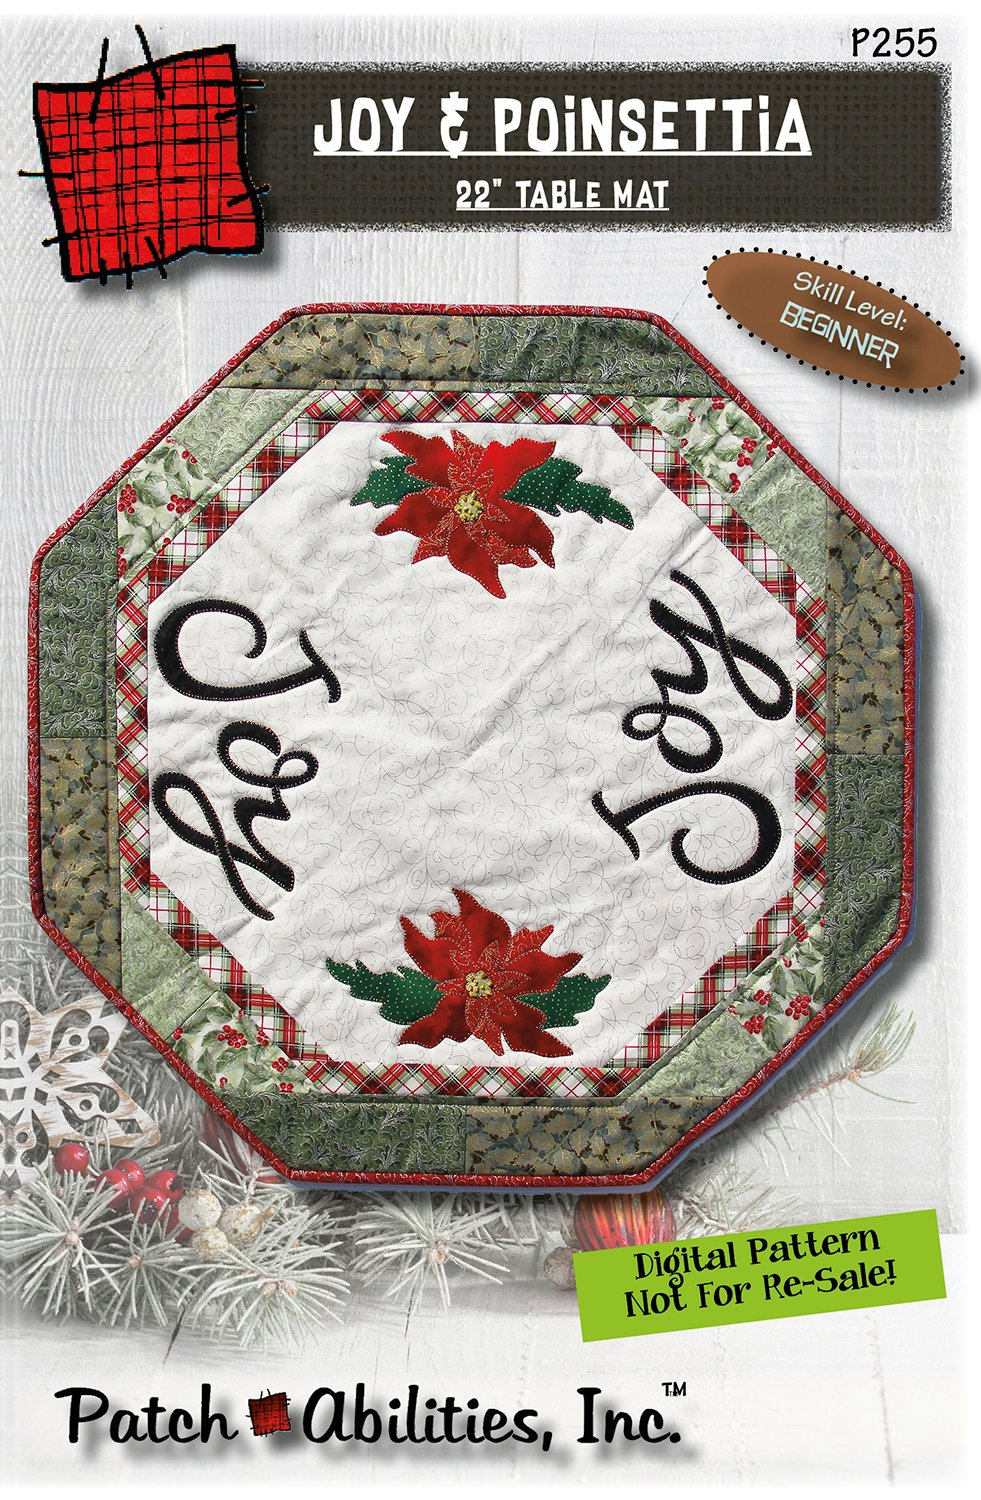 P255 Joy & Poinsettia table centerpiece DIGITAL DOWNLOAD PATTERN